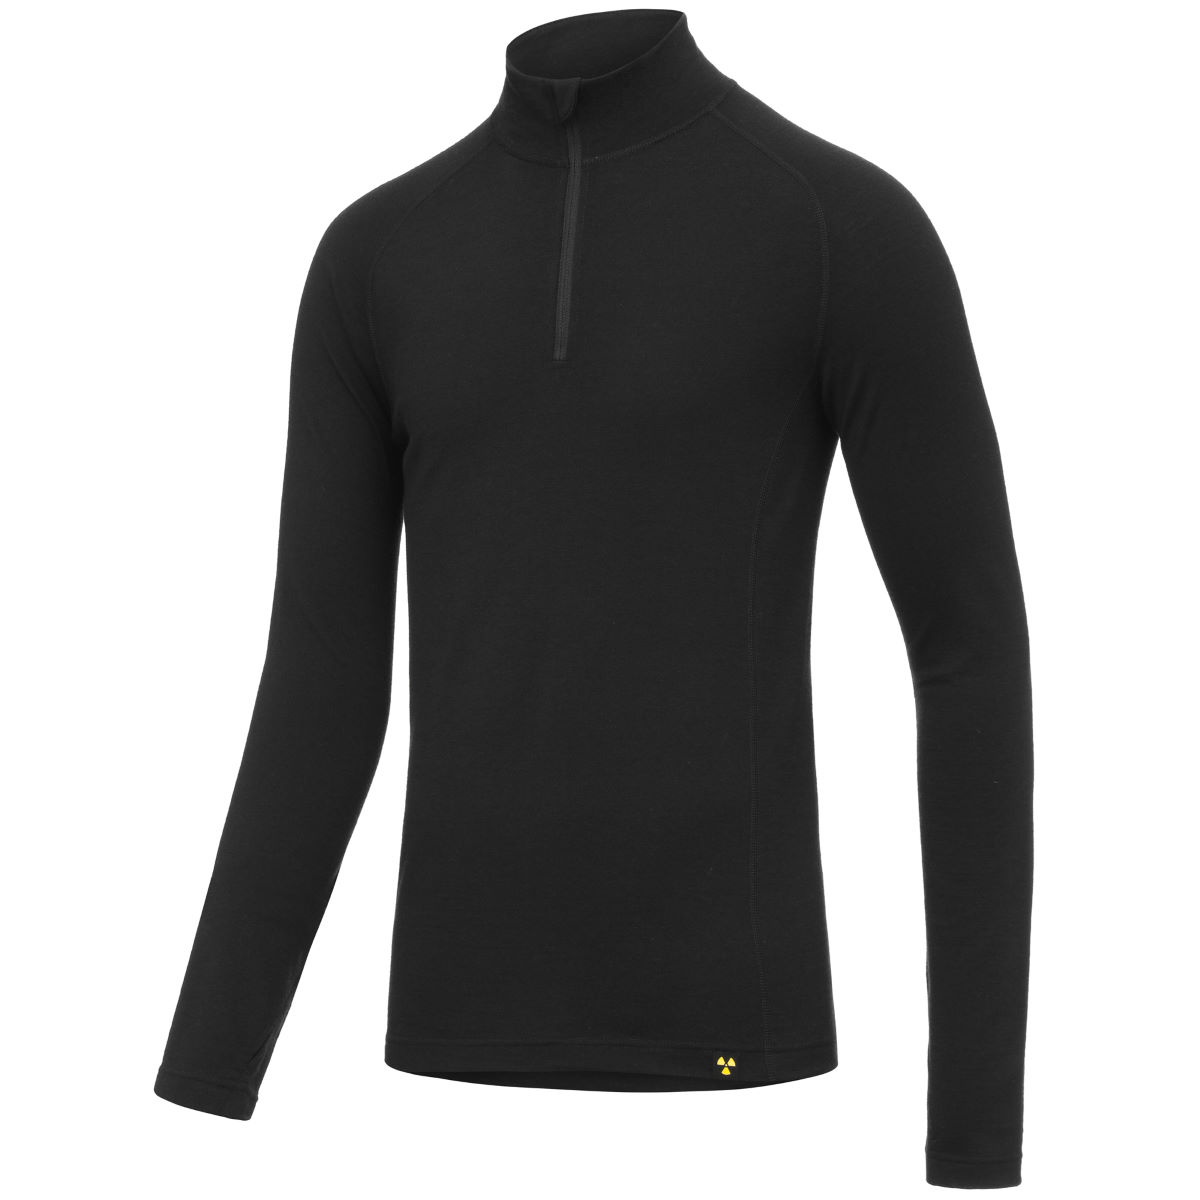 Nukeproof Nukeproof Merino Long Sleeve 1/4 Zip Baselayer   Base Layers